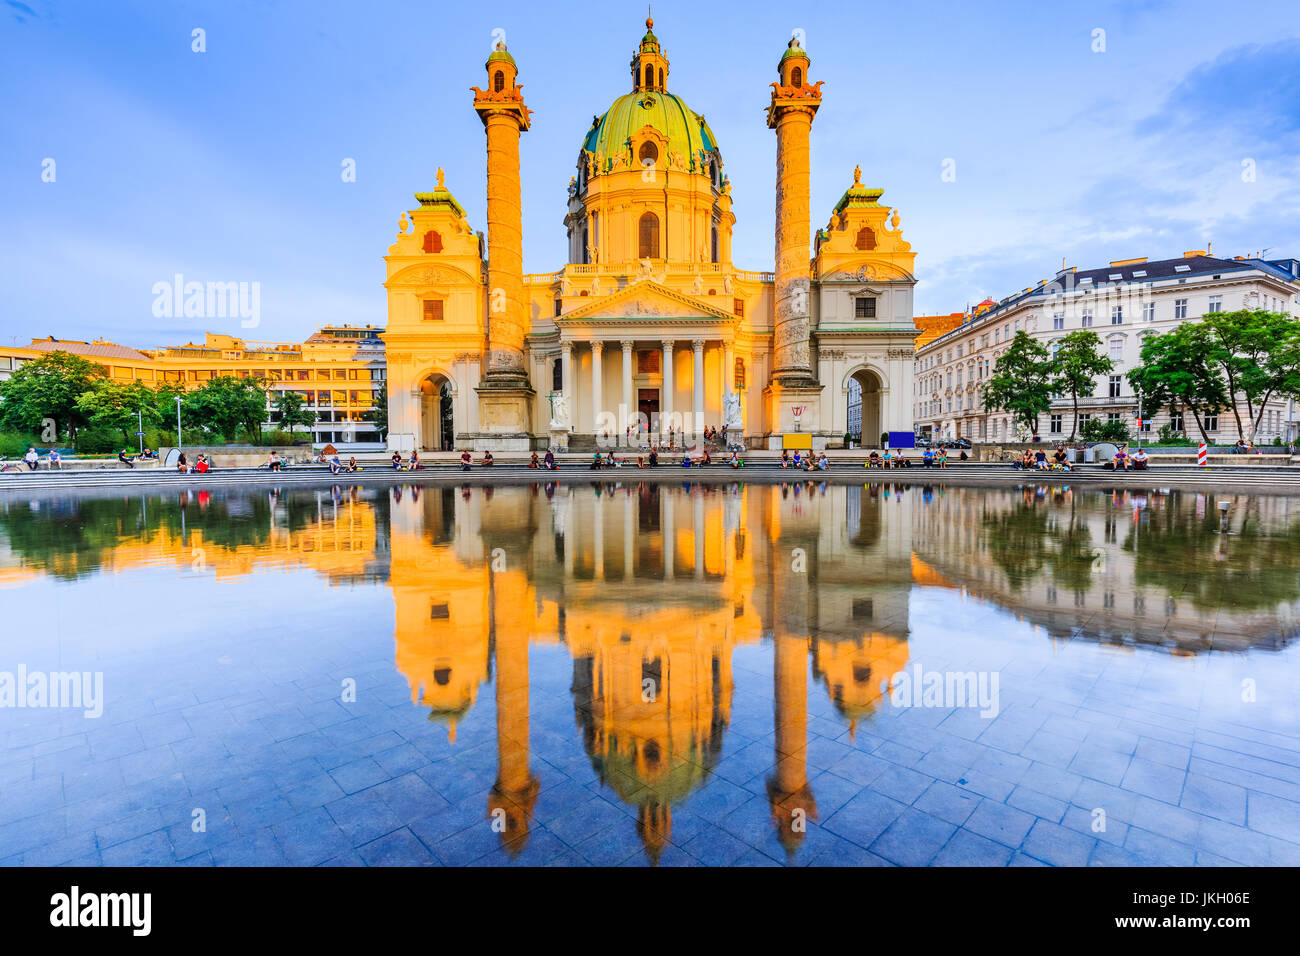 Vienna, Austria. St. Charles's Church (Karlskirche) at sunset. - Stock Image